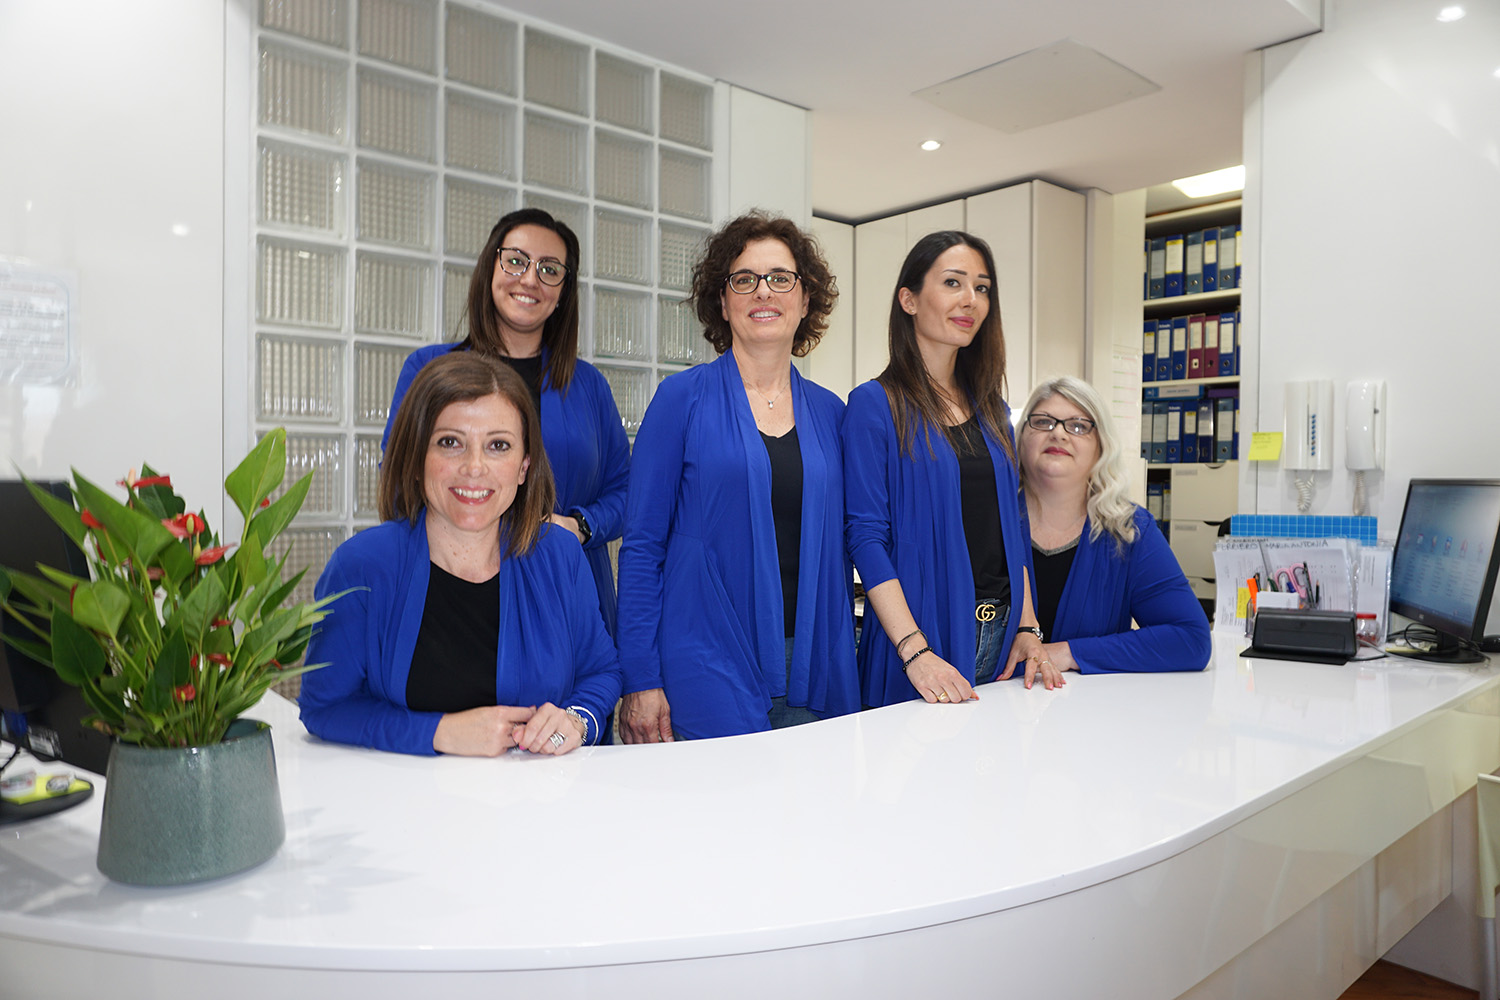 segreteria studio dentistico laureti latina